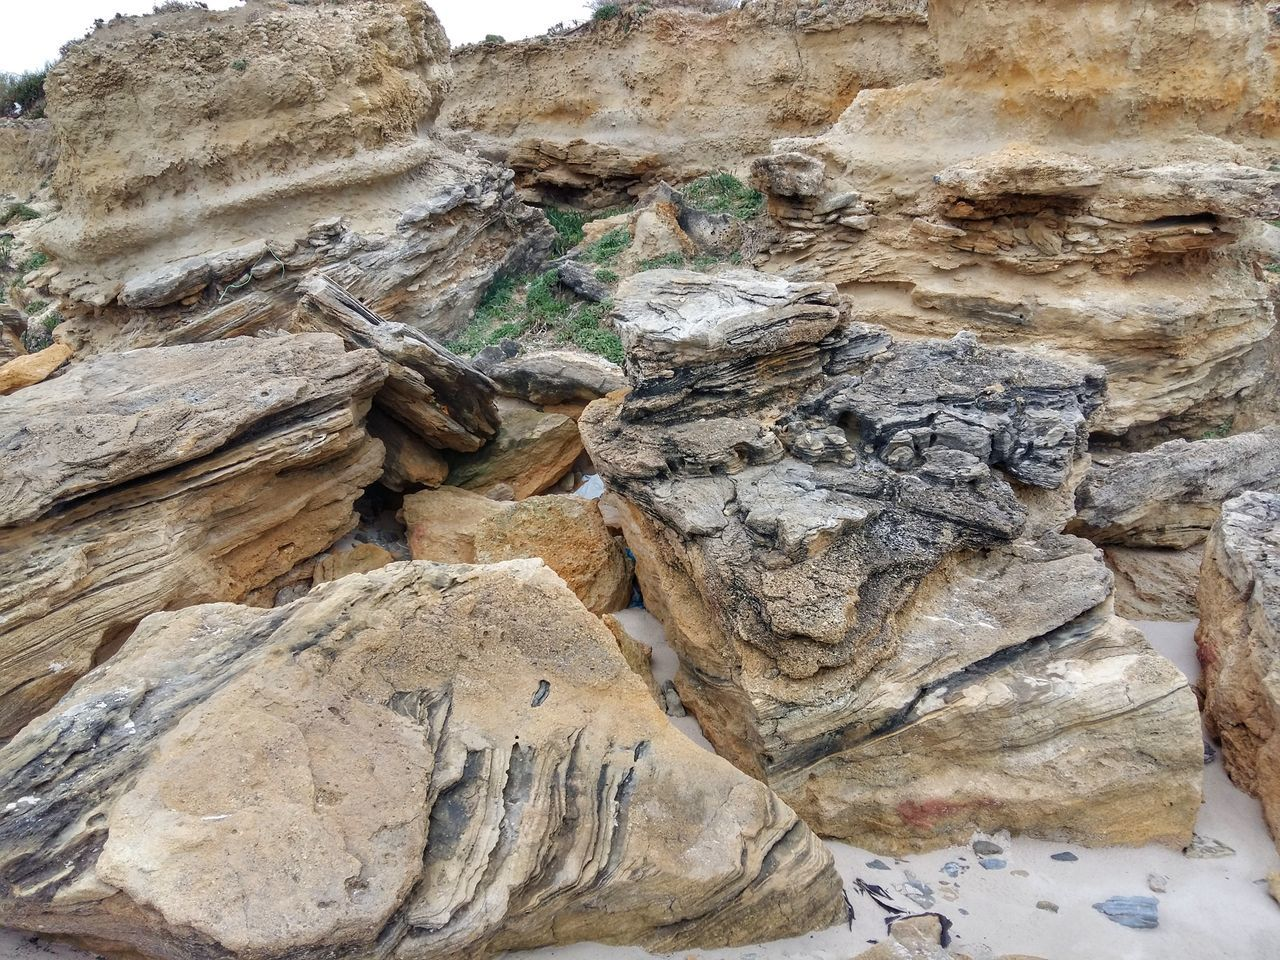 rock - object, rock formation, day, textured, nature, no people, physical geography, outdoors, close-up